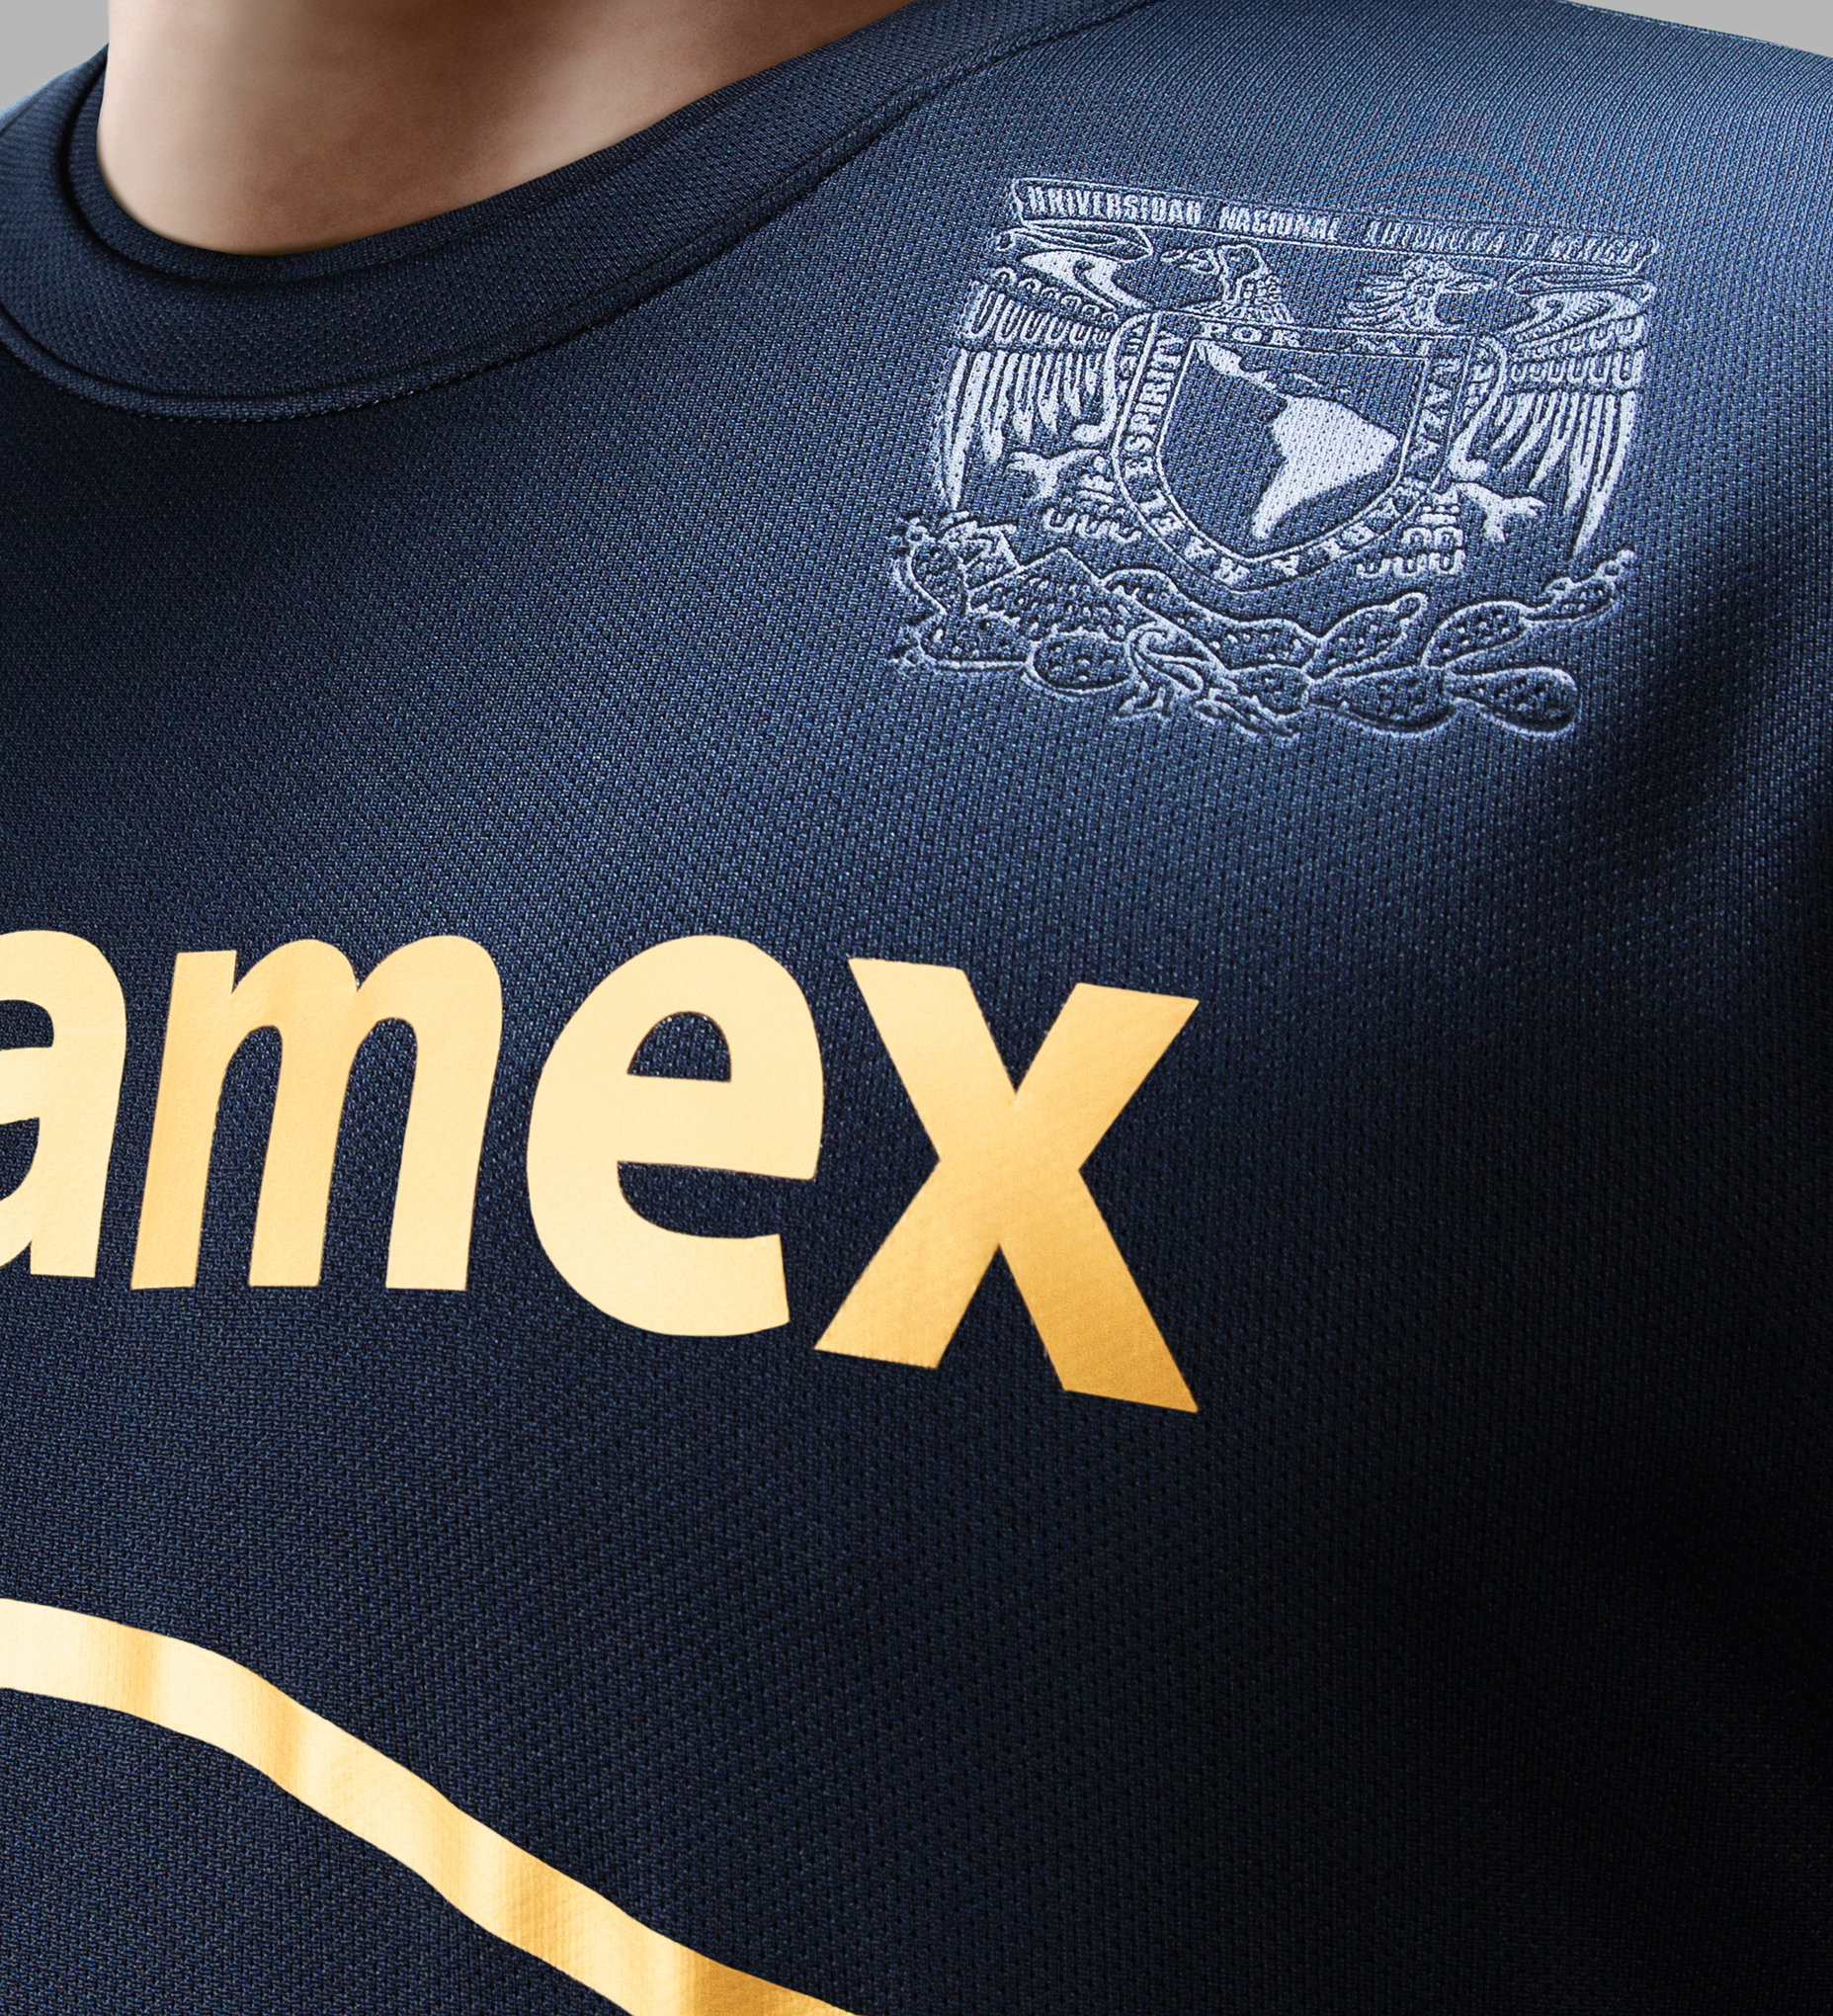 Pumas_away_crest_1_original_medium